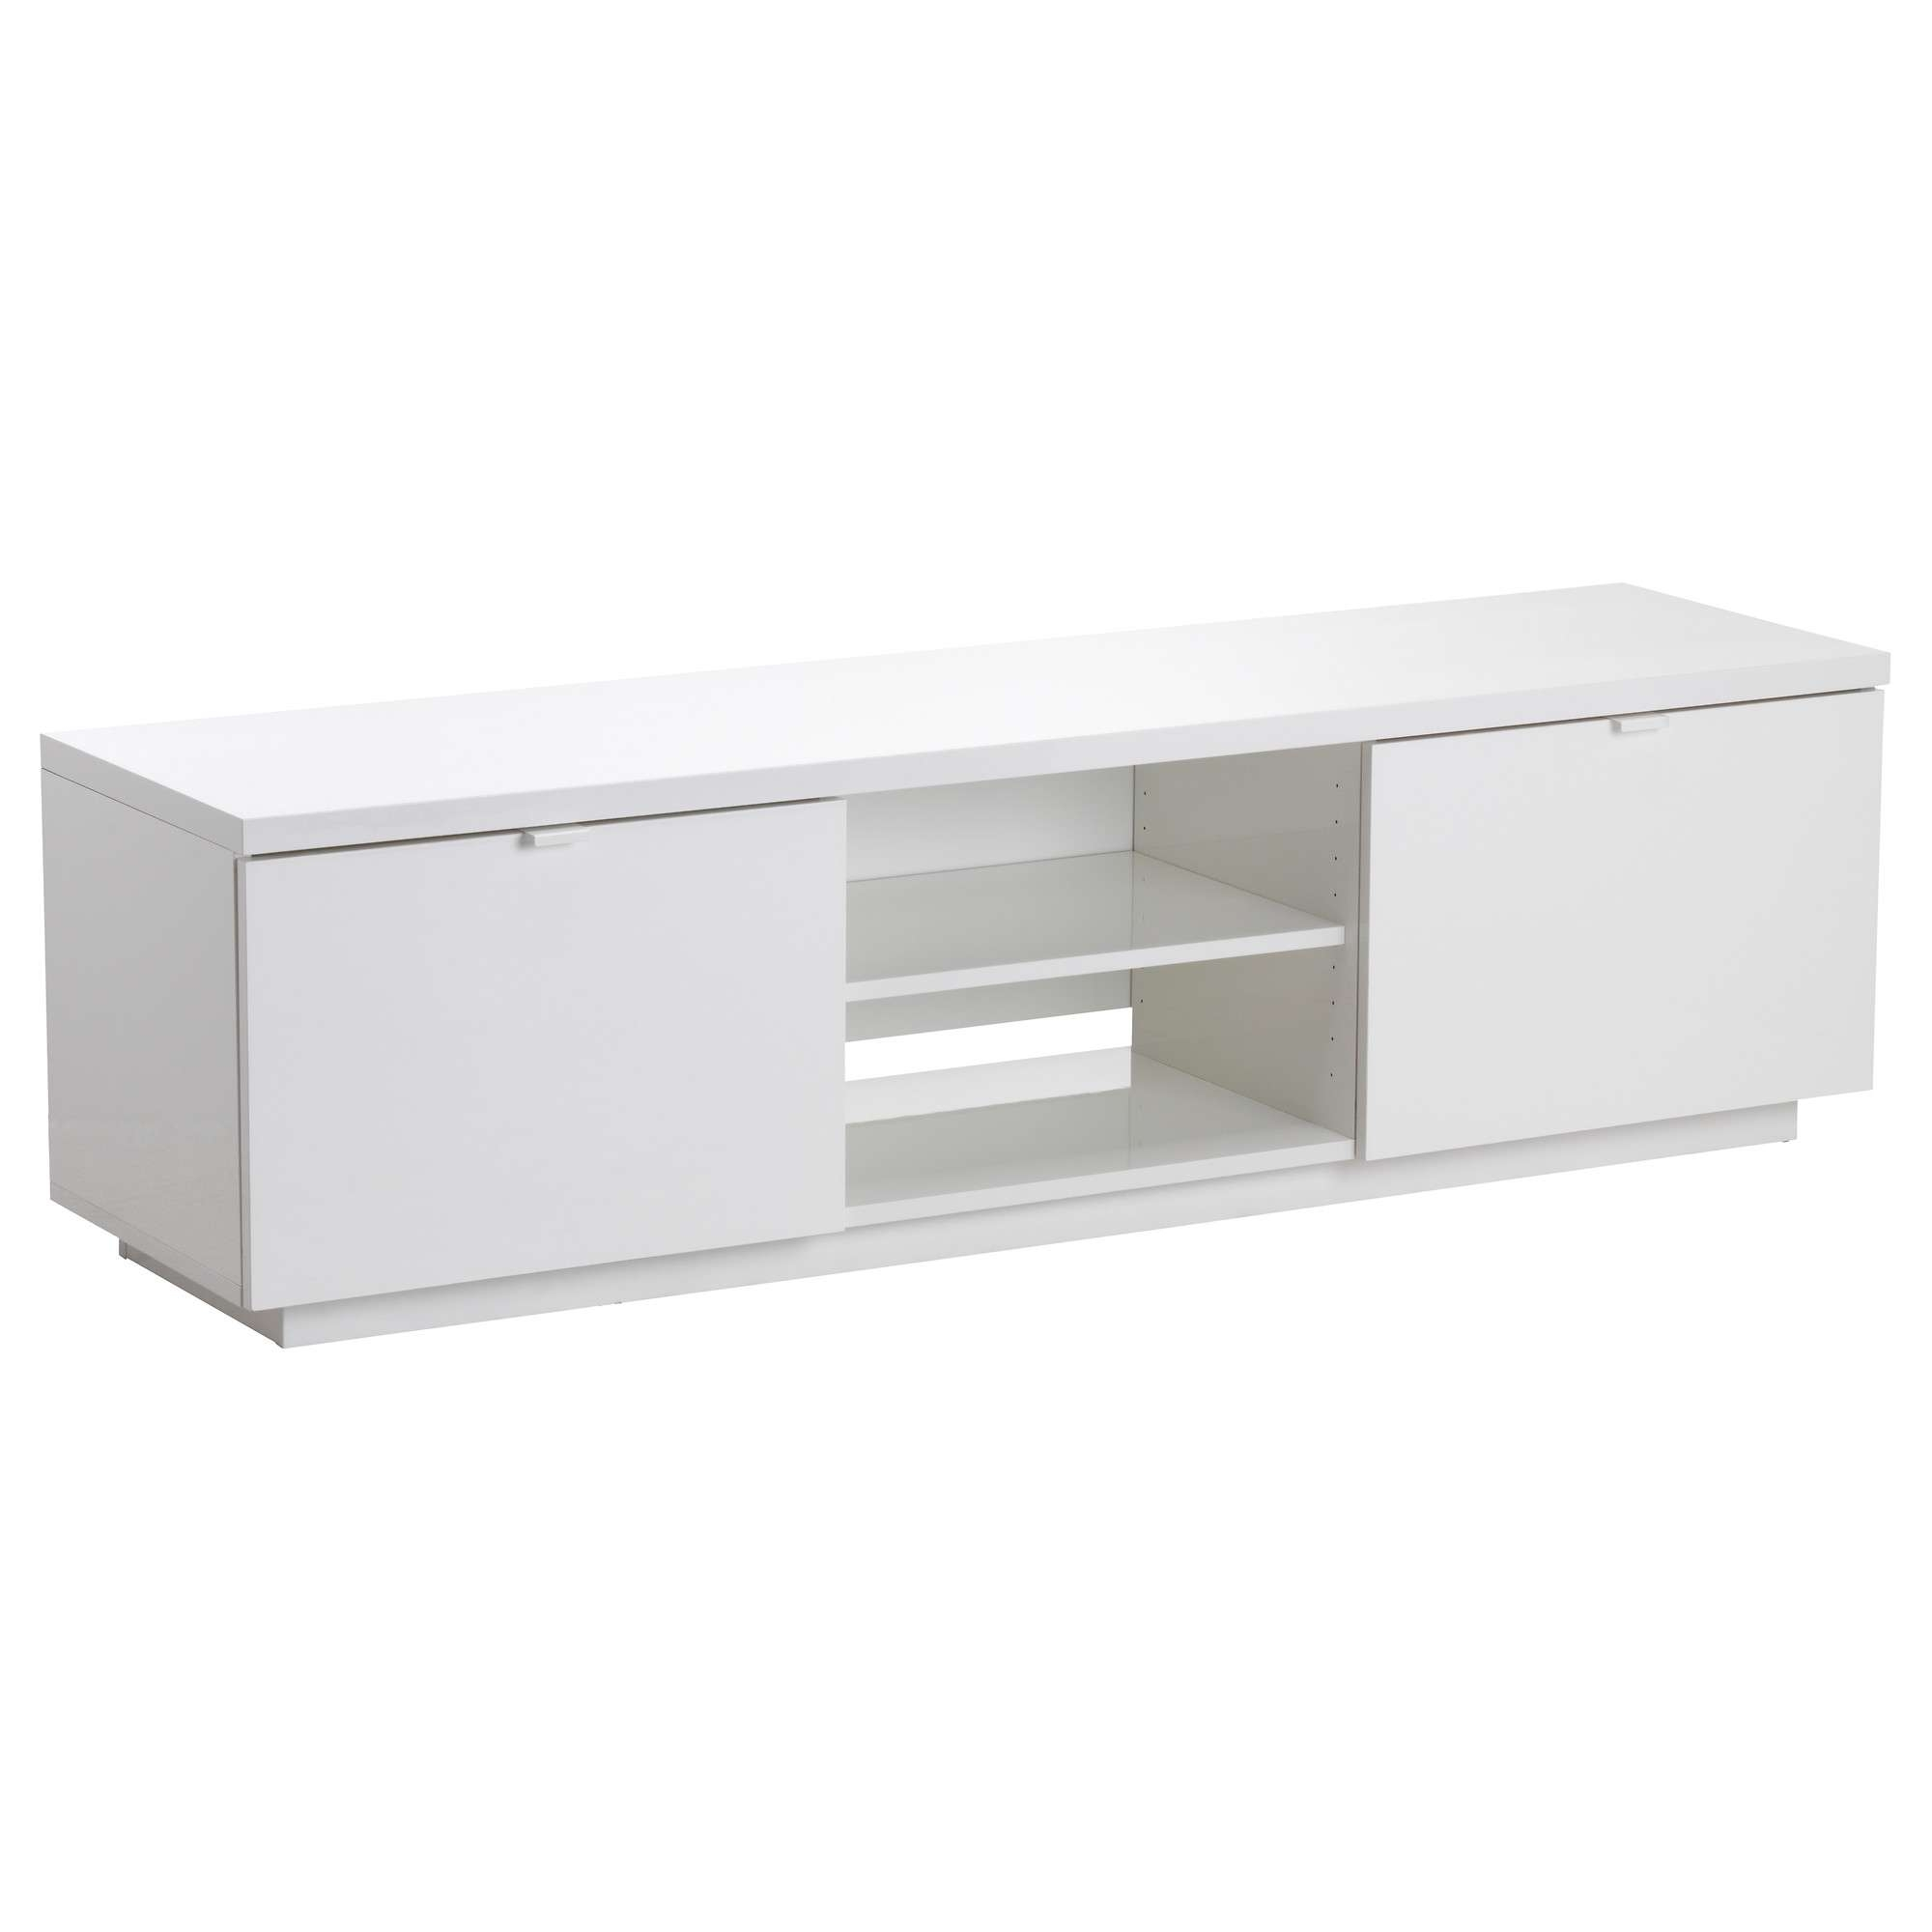 Byås Tv Bench High Gloss White 160x42x45 Cm – Ikea With Regard To White Gloss Tv Cabinets (View 8 of 20)